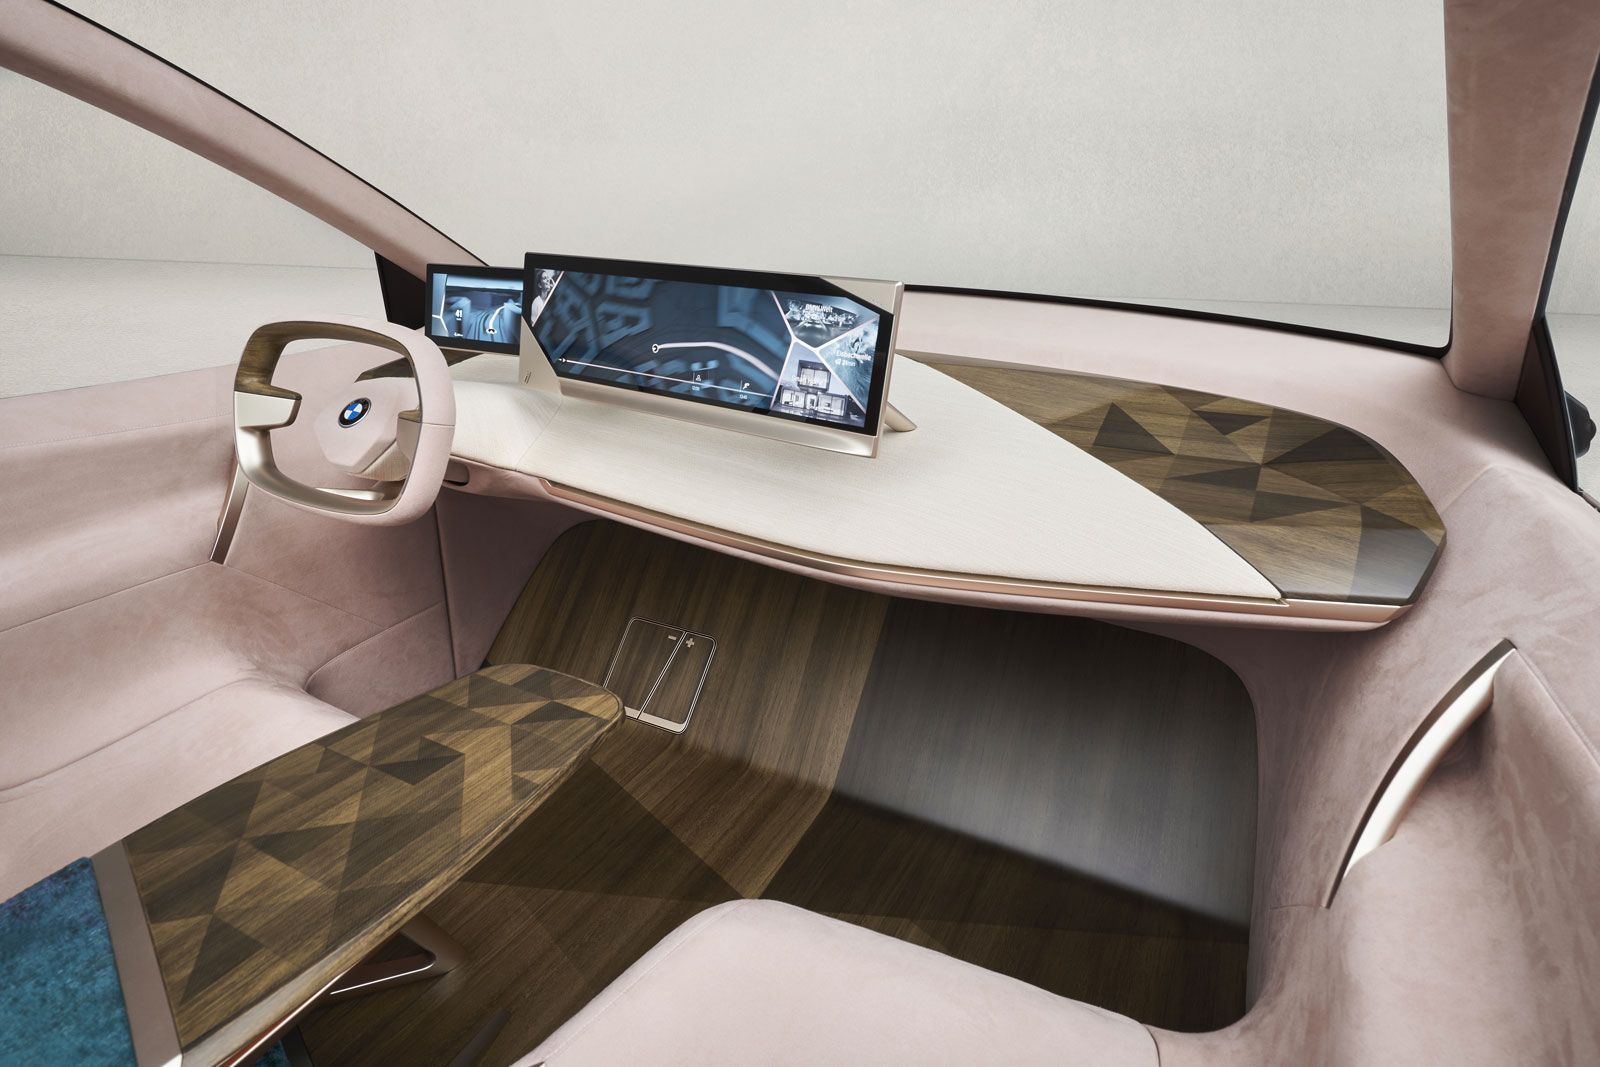 The original interior of the BMW Vision iNEXT, inspired by modern luxury furniture  #BMW #ConceptCar #Futuristic #CarDesign #Design #AutonomousVehicles #CarBodyDesign #InteriorDesign #CarInterior #Interior